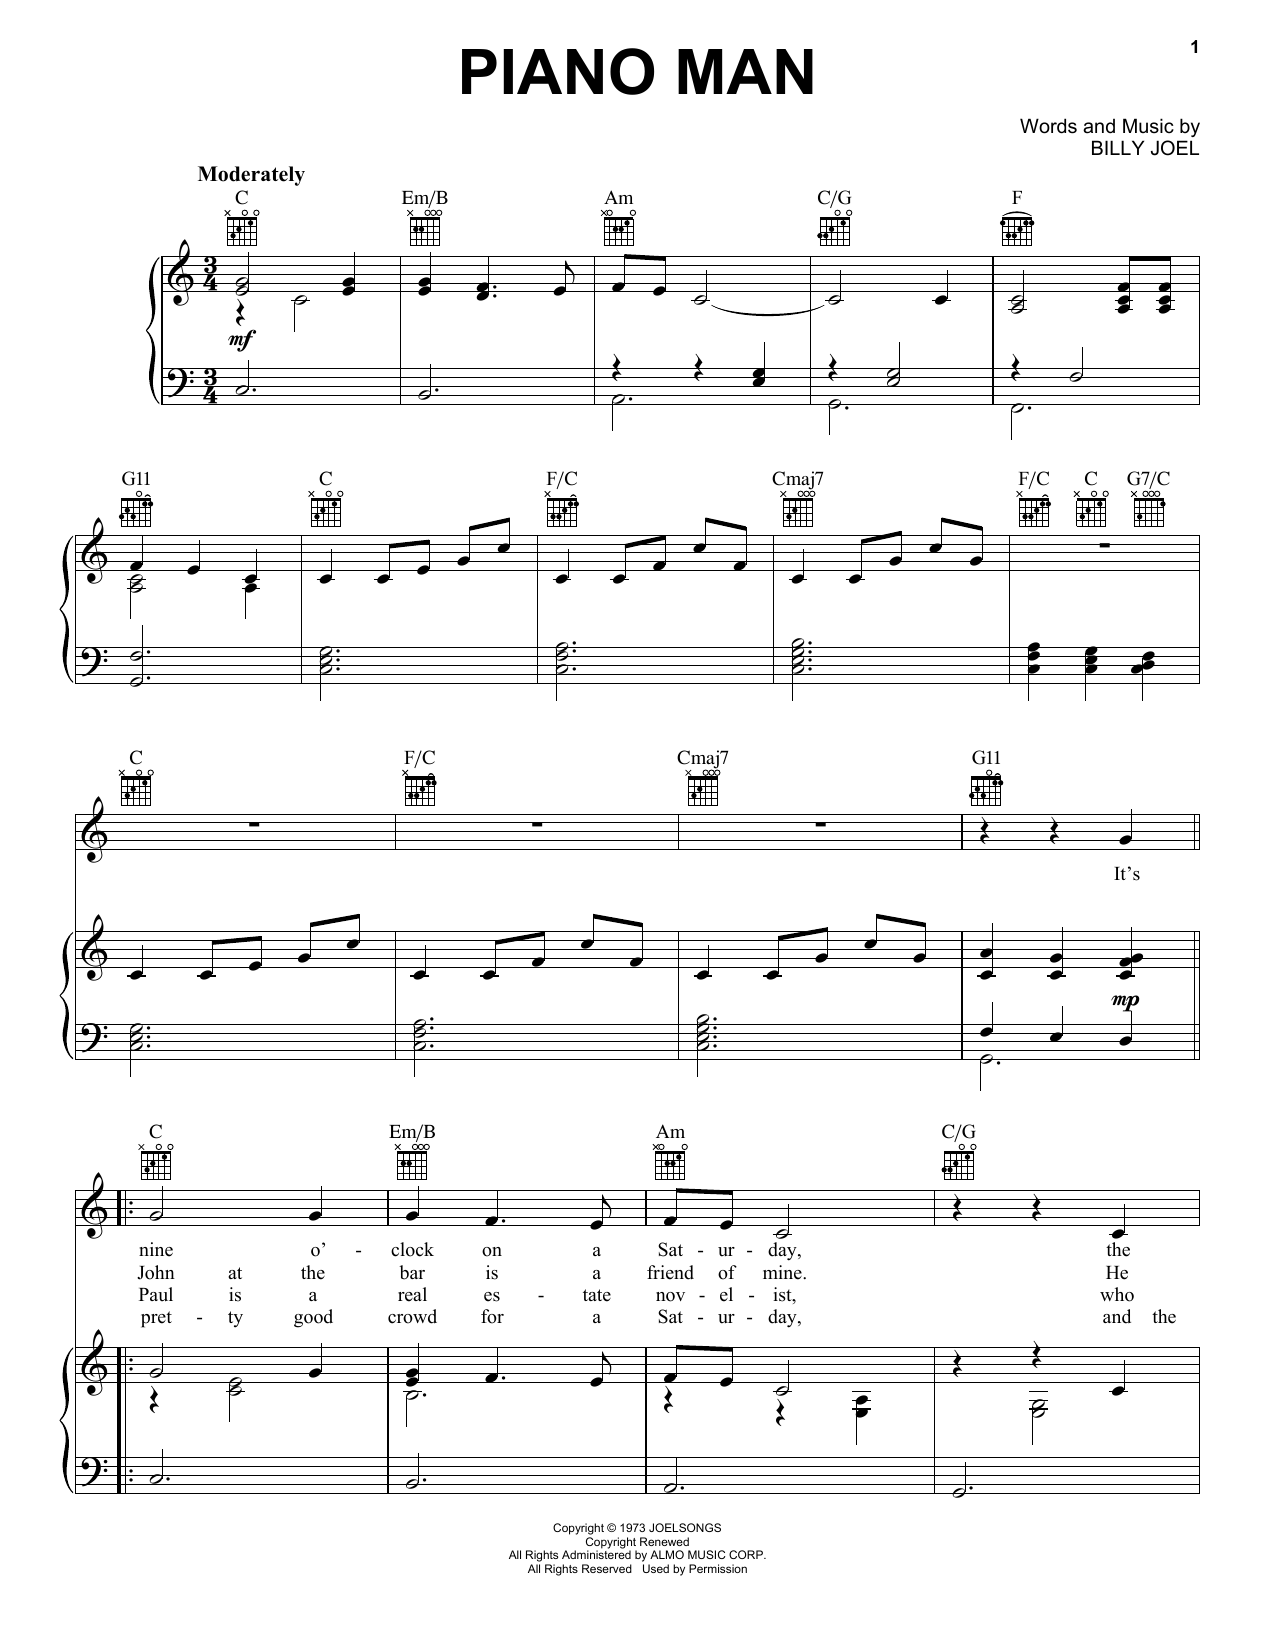 Billy Joel Piano Man sheet music notes and chords